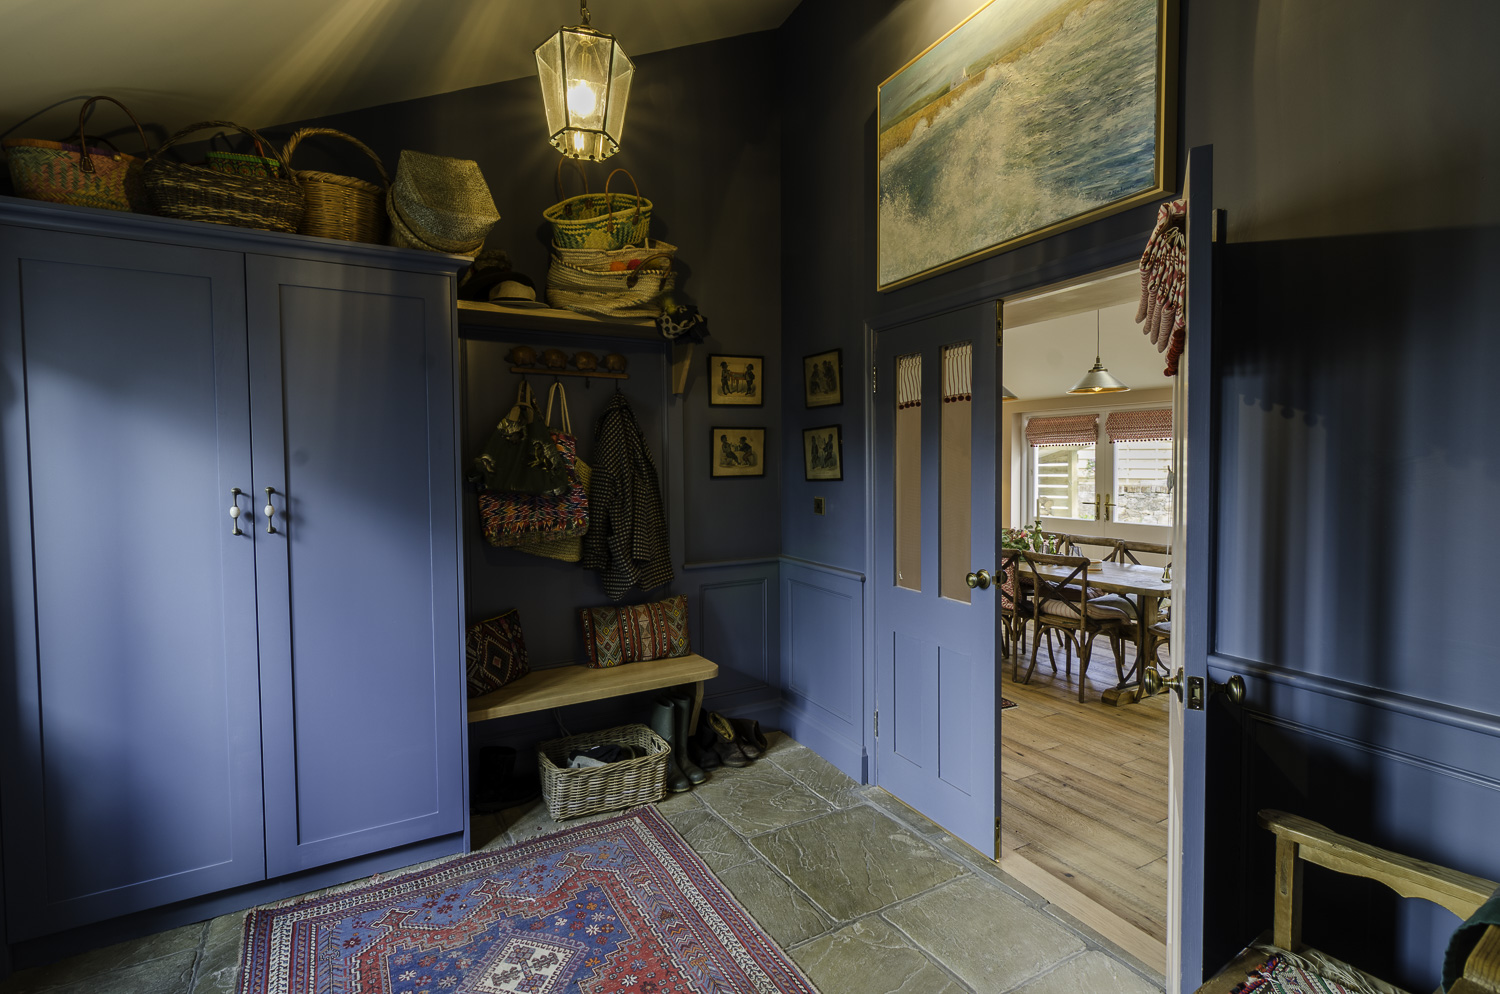 country_home-hallway-1500pw-500kb.jpg